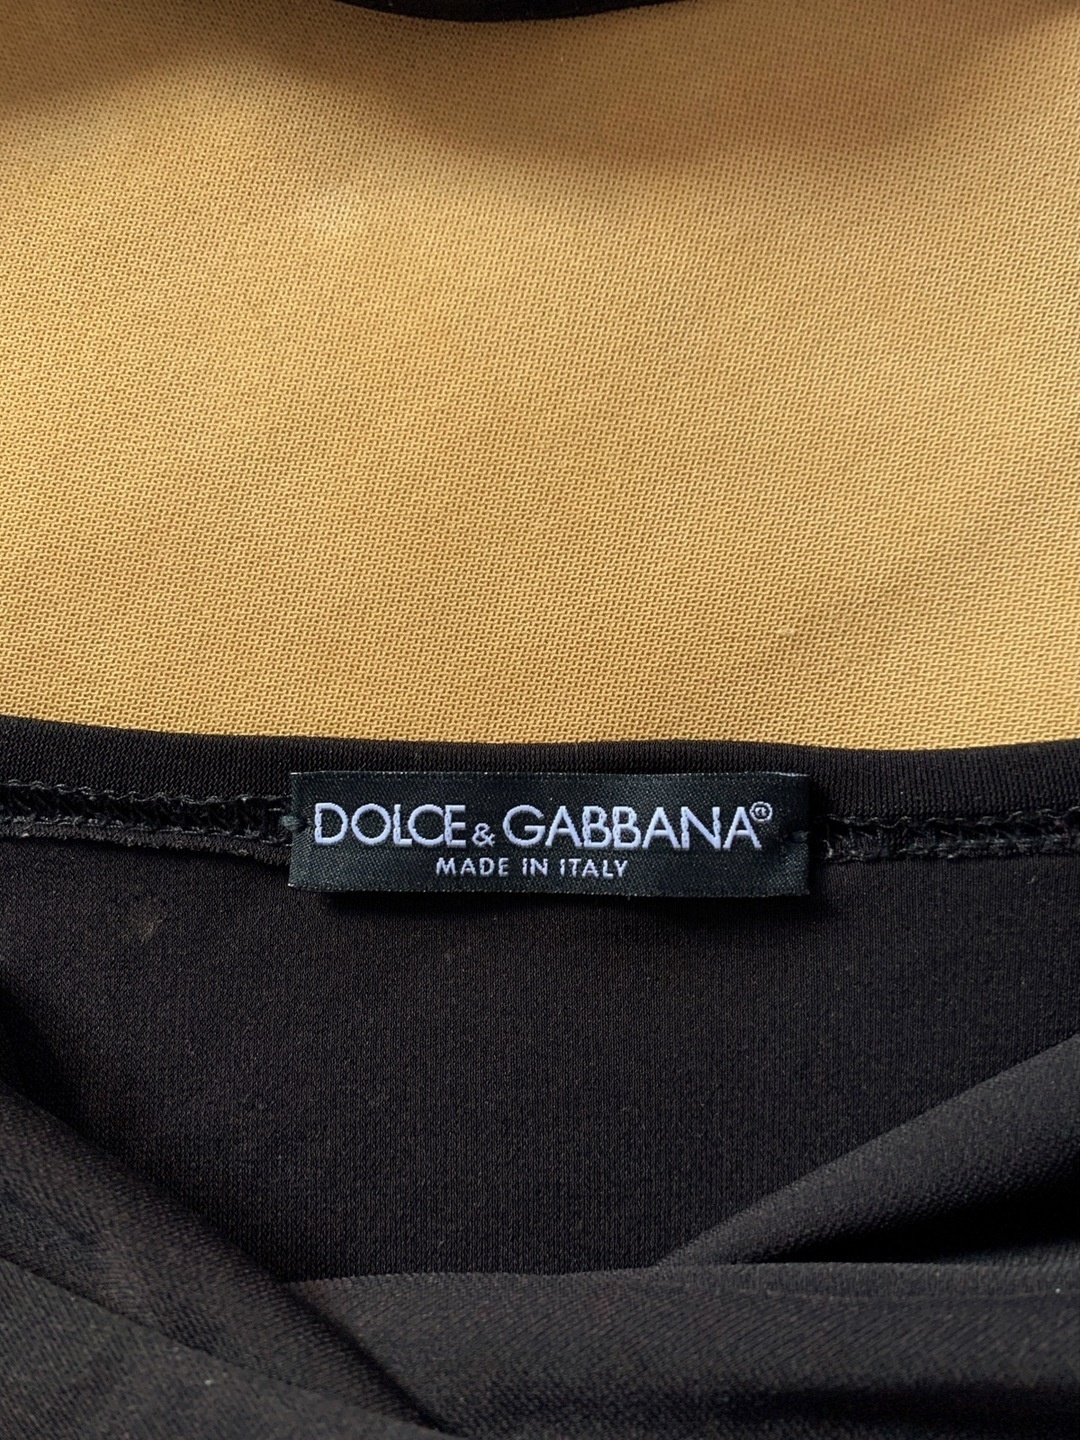 Women's tops & t-shirts - DOLCE & GABBANA photo 2